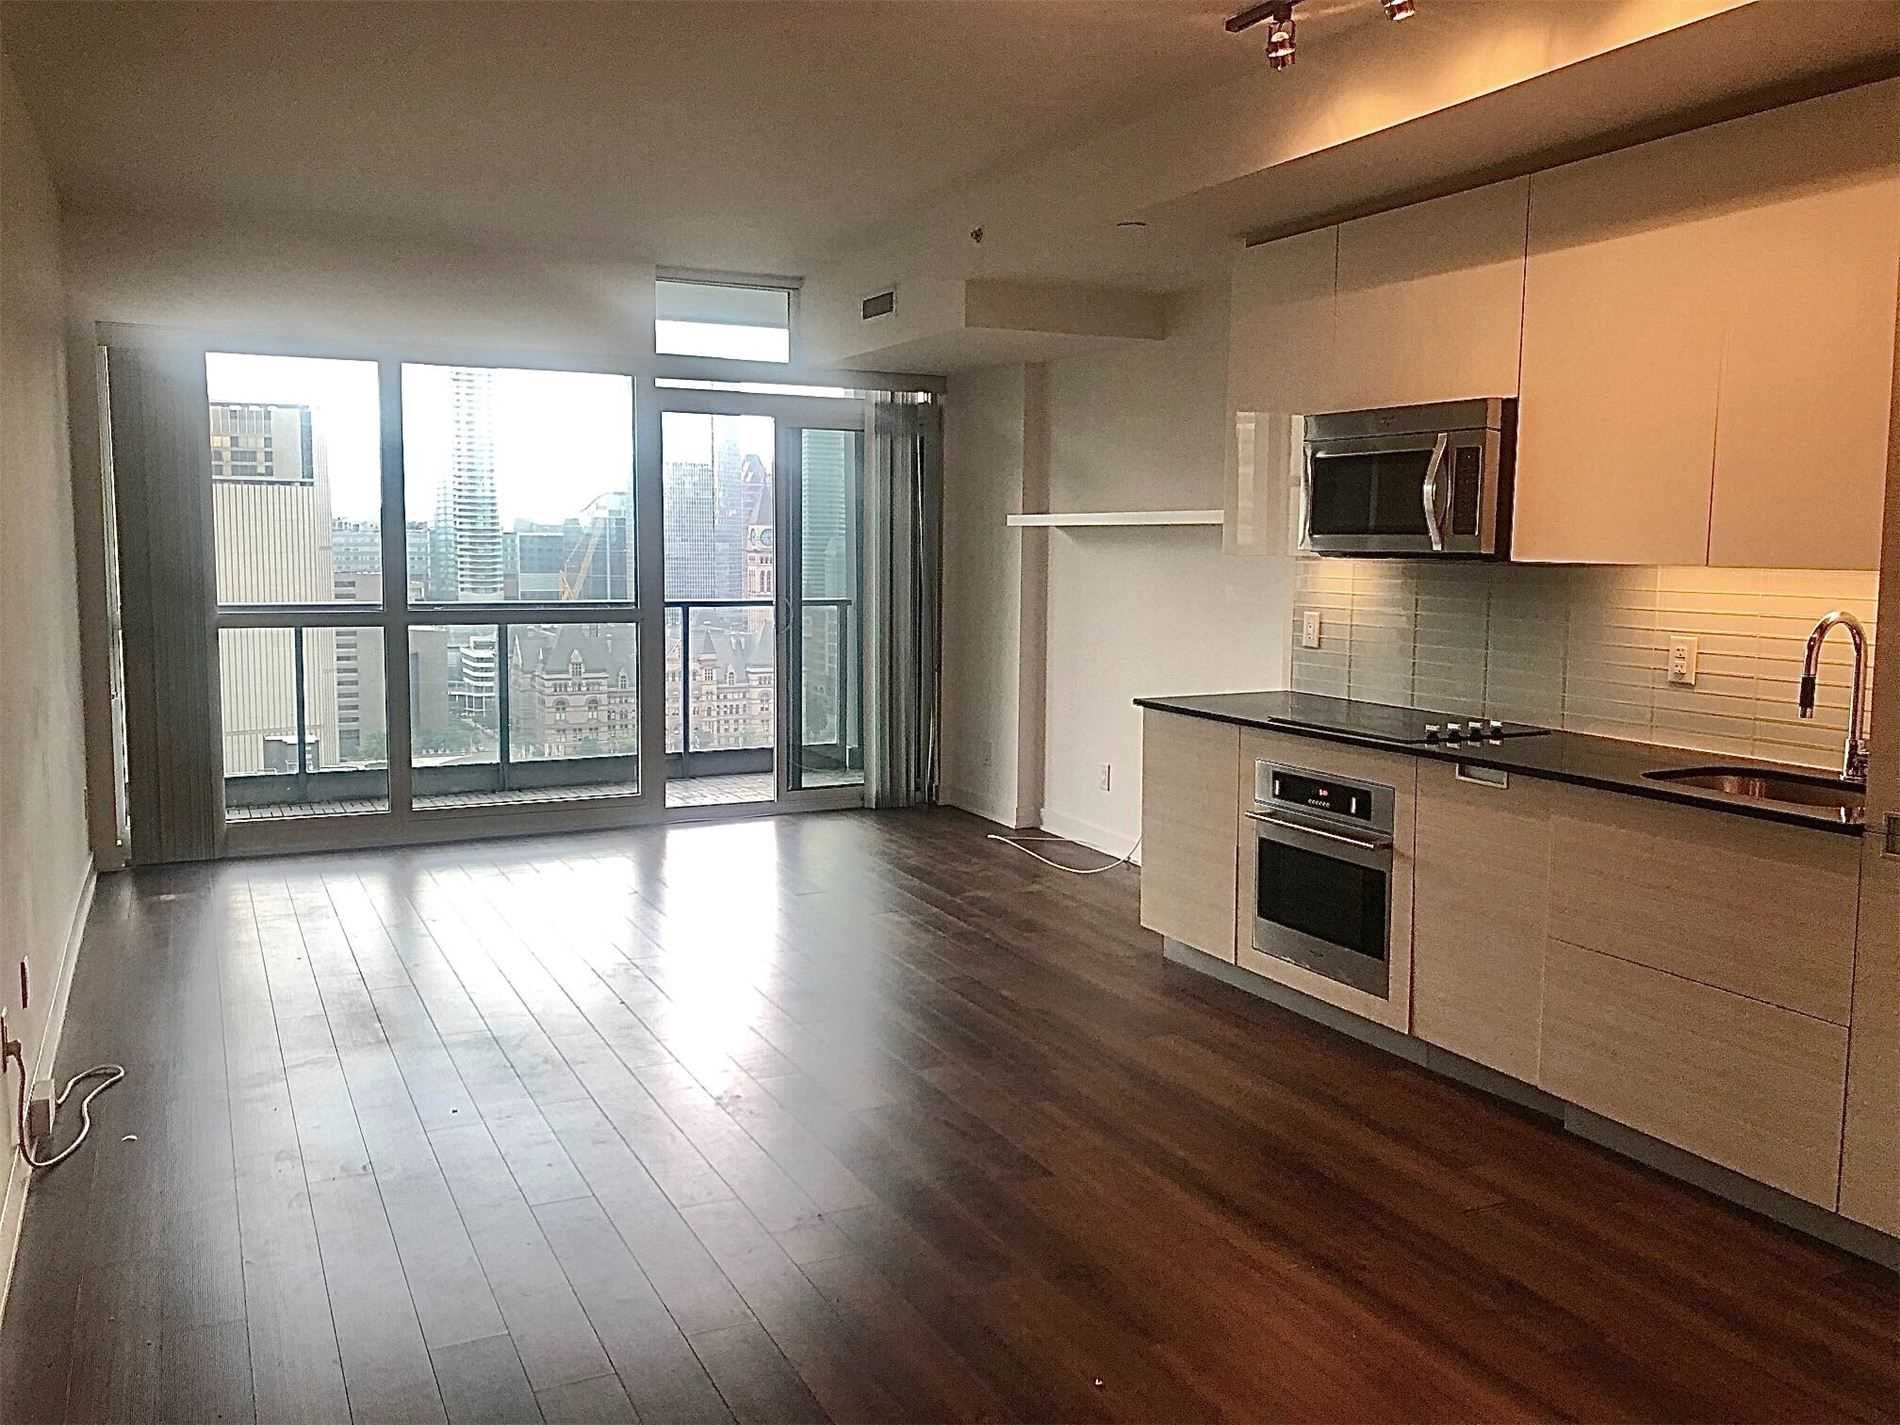 210 Simcoe St, unit 2306 for rent in Toronto - image #2